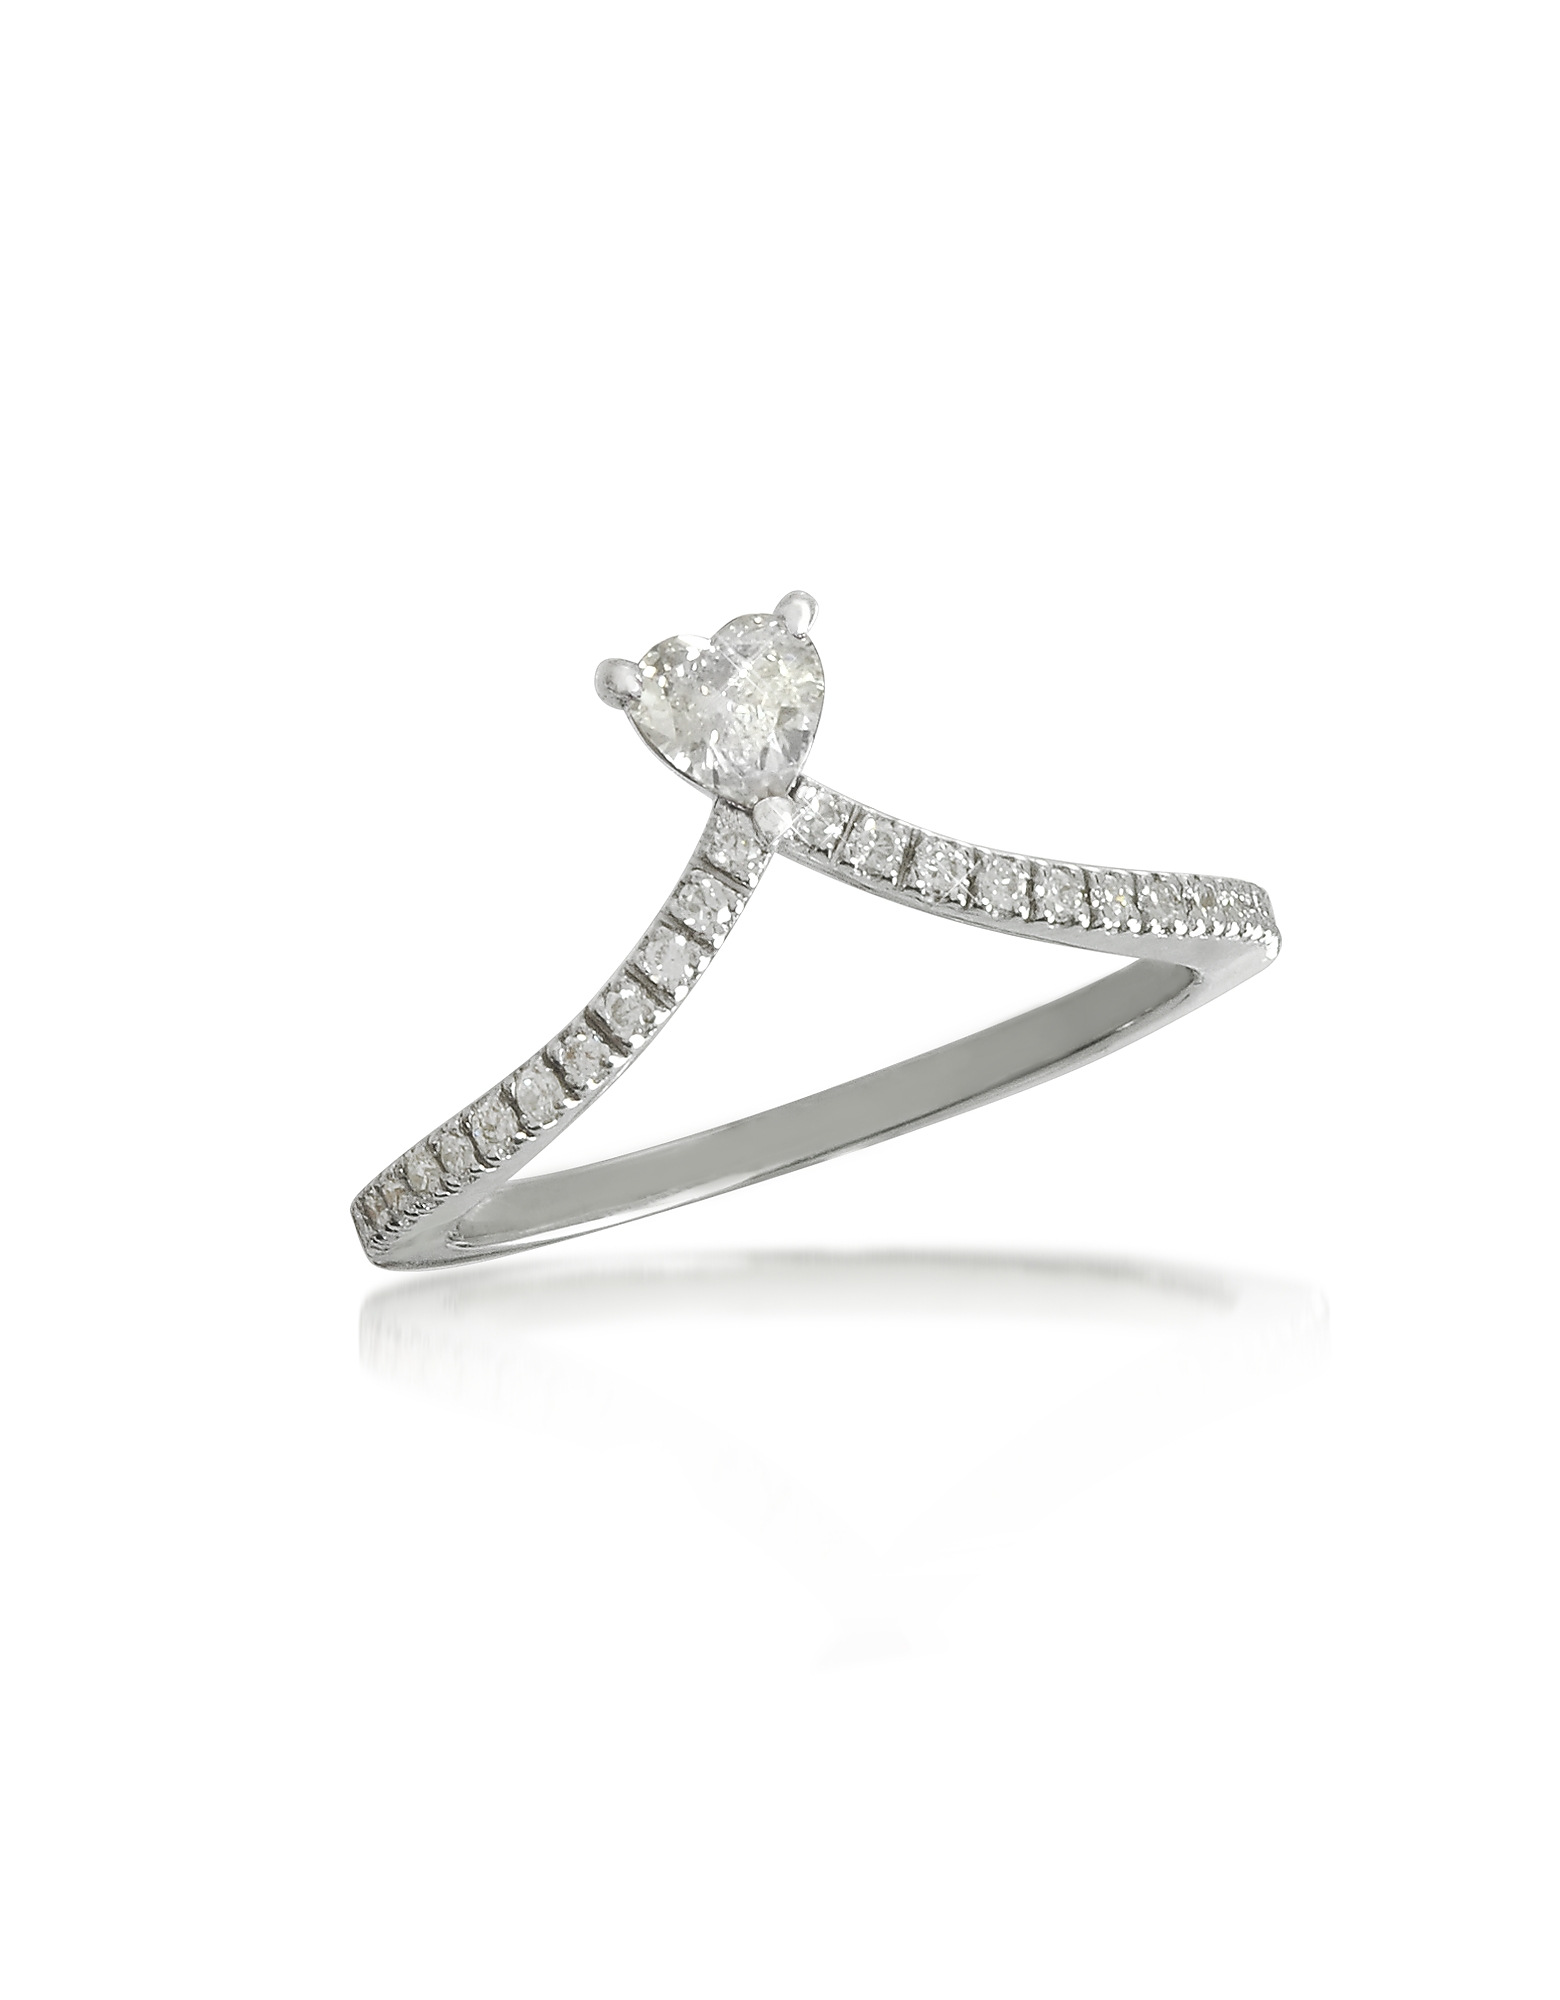 Forzieri Rings, Heart Diamond V-Shaped Band Ring